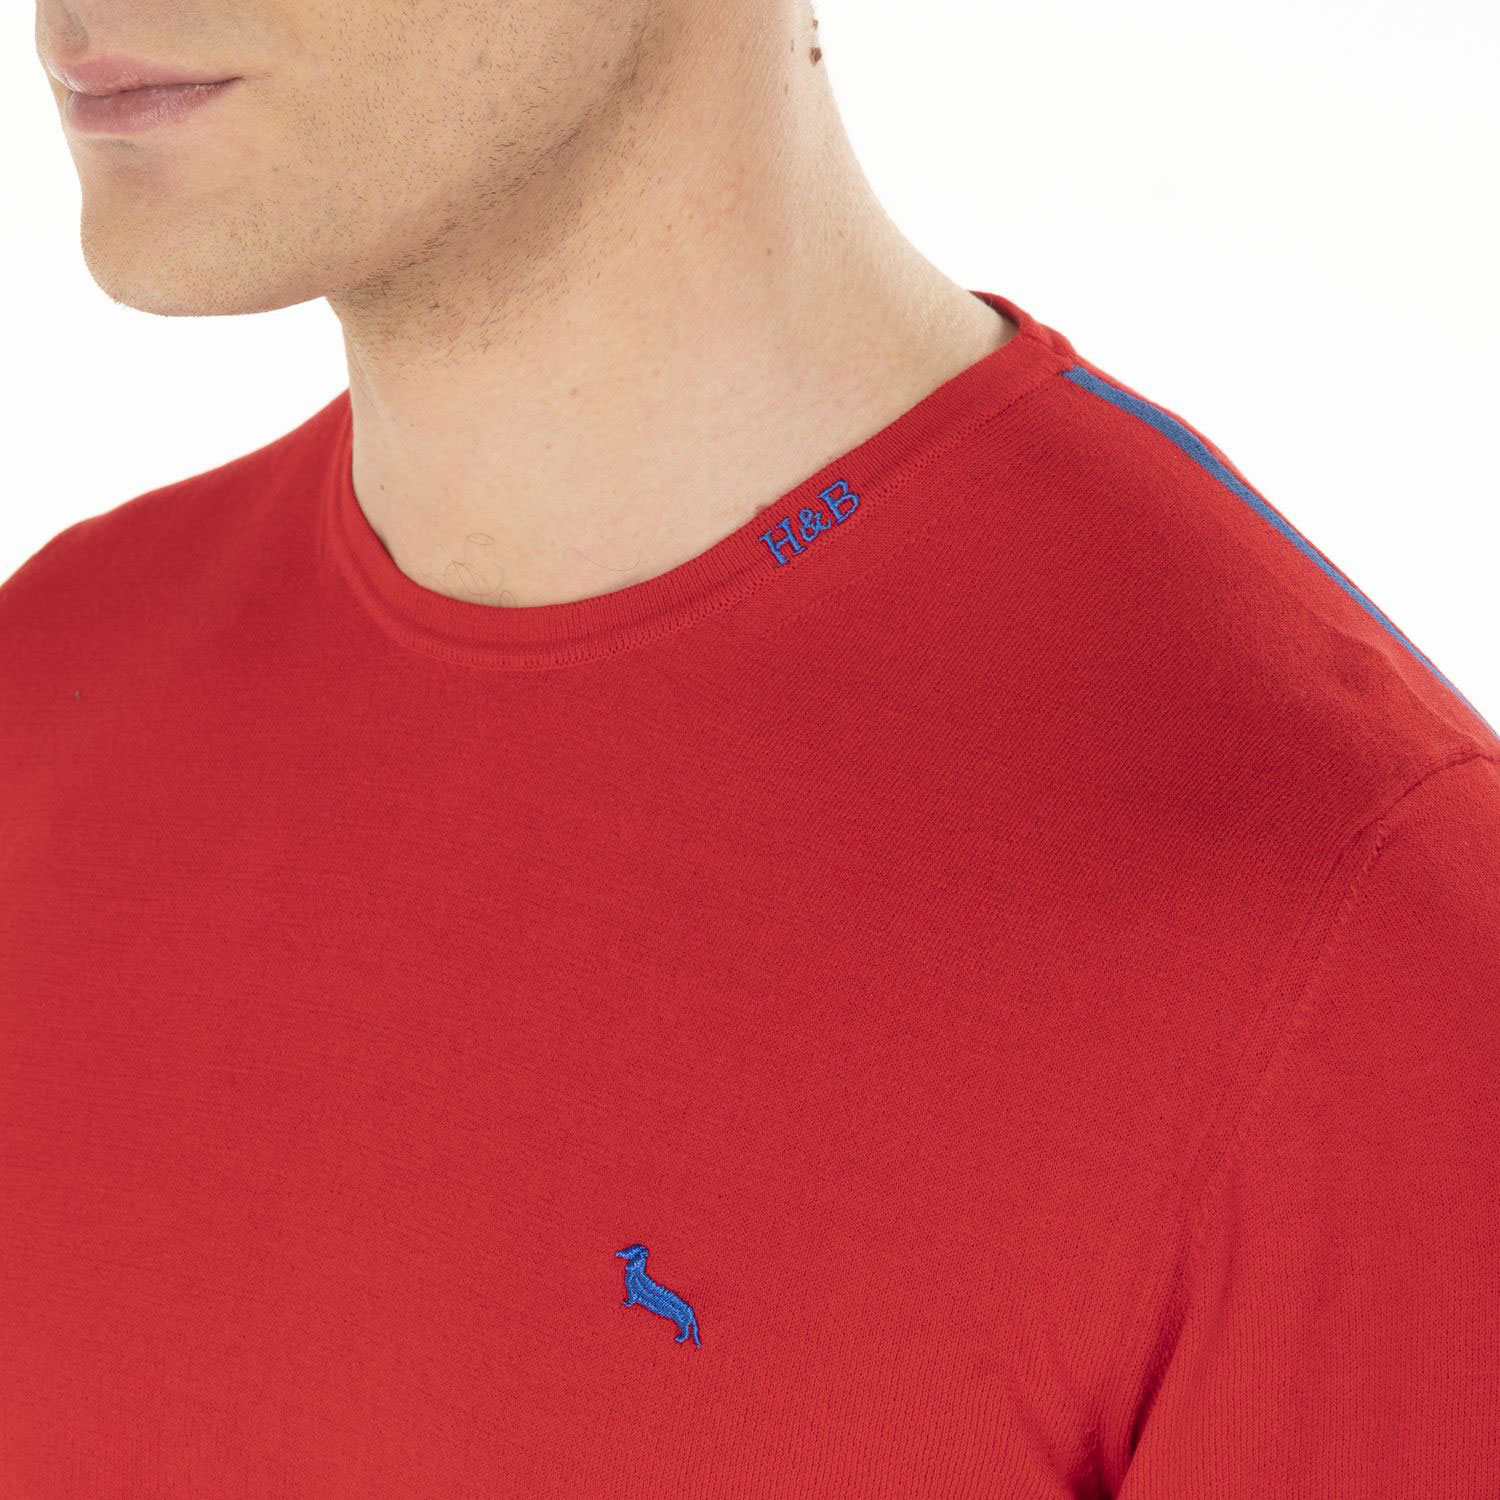 T-shirt in cotone Harmont and Blaine HARMONT & BLAINE | T-shirt | HRF239030728501